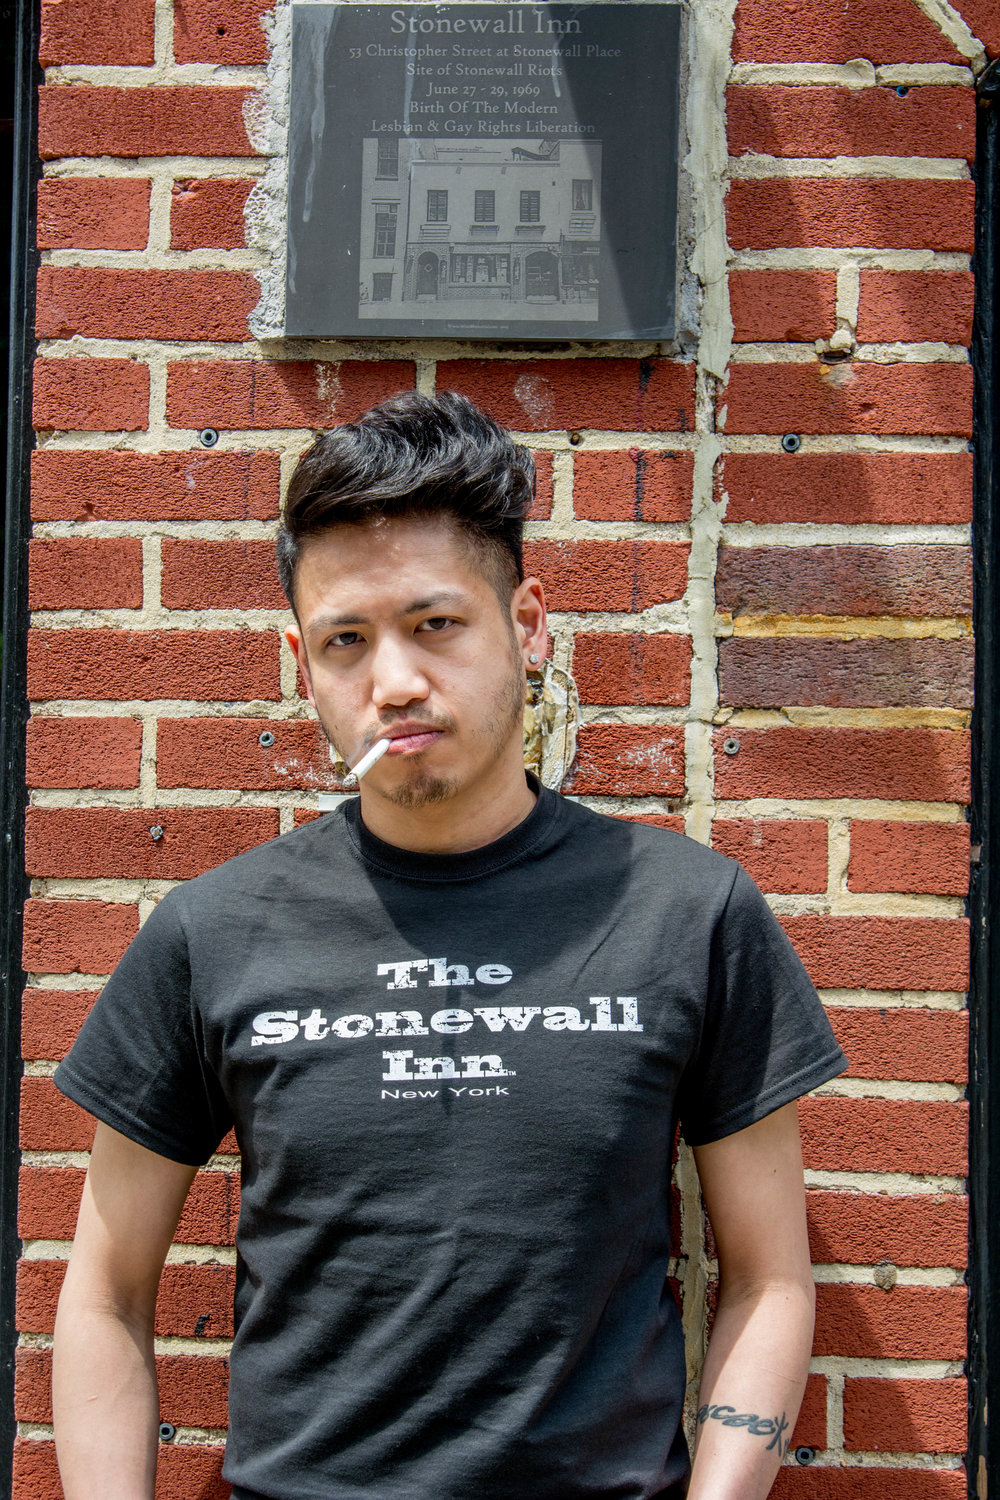 "Paolo Nickname: Stonewall's Gaysian Hometown: Queens and Long Island Turn Ons: Nerds and Geeks Turn Offs: Attitudes and Rudeness I went to college for Nursing and now I'm a Bartender! I've worked at the Stonewall since 2009. The Stonewall is my second family and I wouldn't trade them for anything! I've live in New York basically all my life and don't plan on ever leaving this amazing city. My family and friends are my life, even though I barely see them since all I do is work! Live, Laugh, Love and ""party all the time!"" Works: Monday- Downstairs Happy Hour- 2 p.m.- 9 p.m. Saturday- Upstairs Happy Hour- 2 p.m. – 9 p.m. Saturday- Upstairs- 9:00 p.m.- 4 a.m."